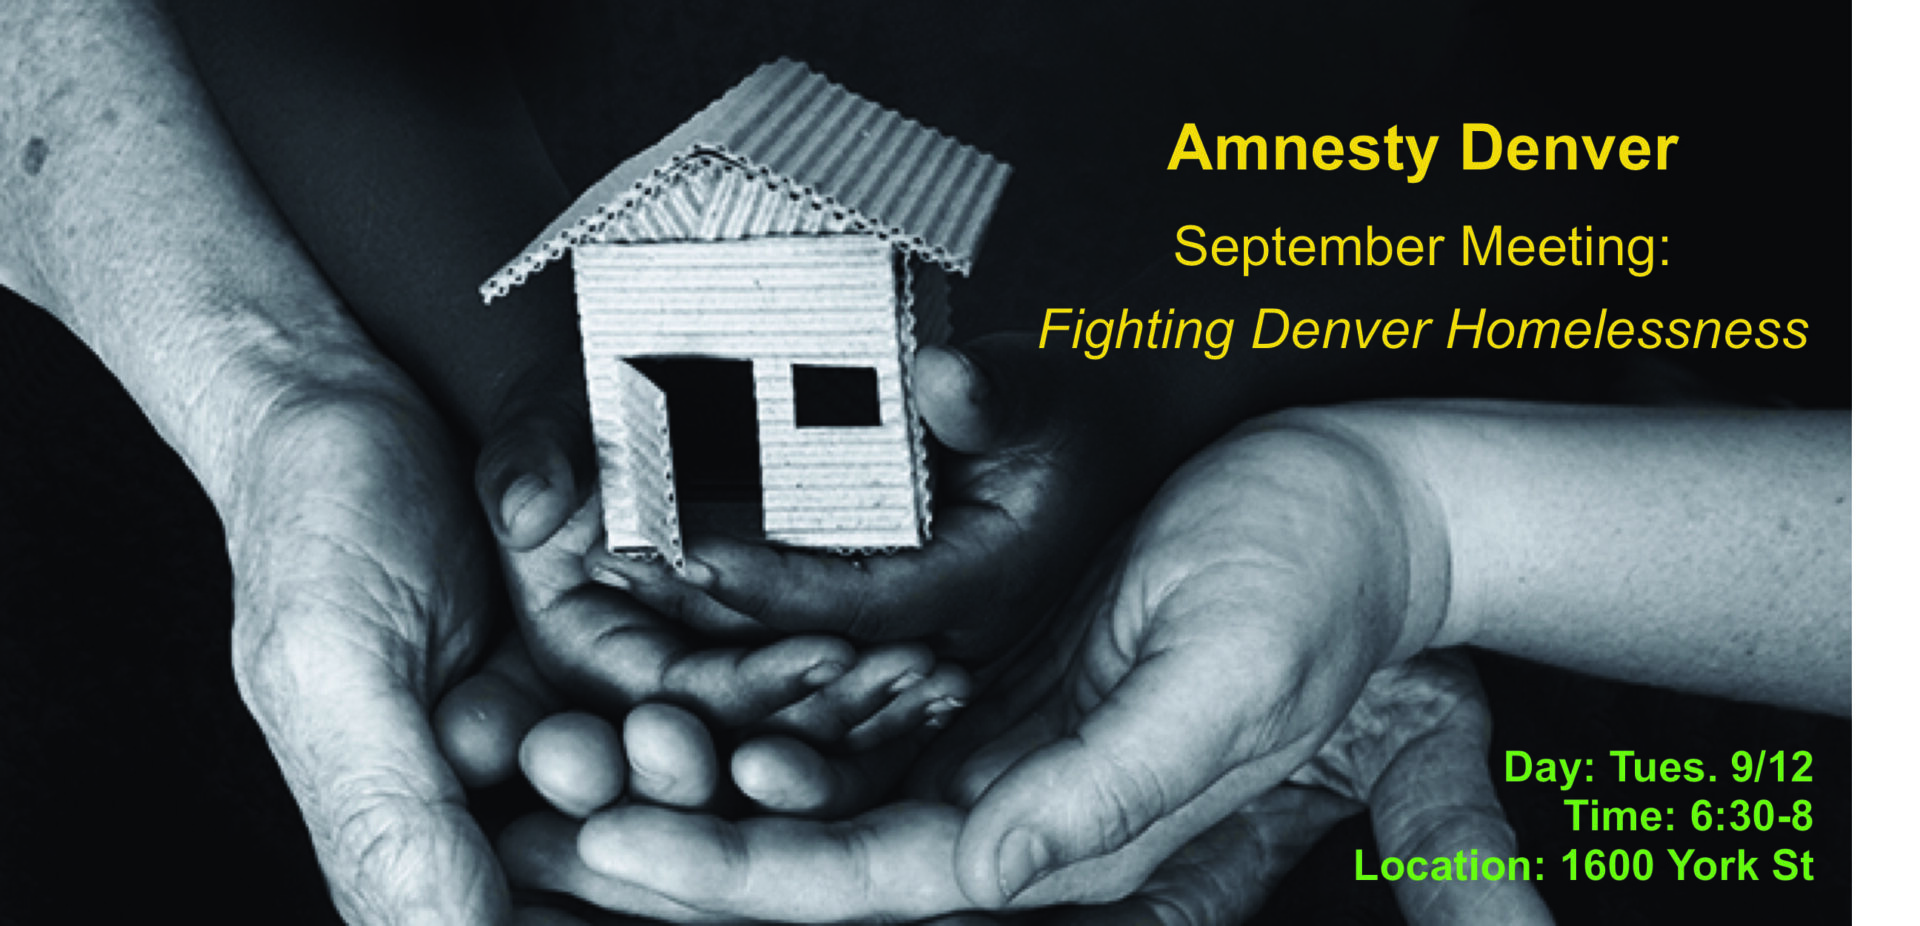 the denver areas efforts to fight homelessness